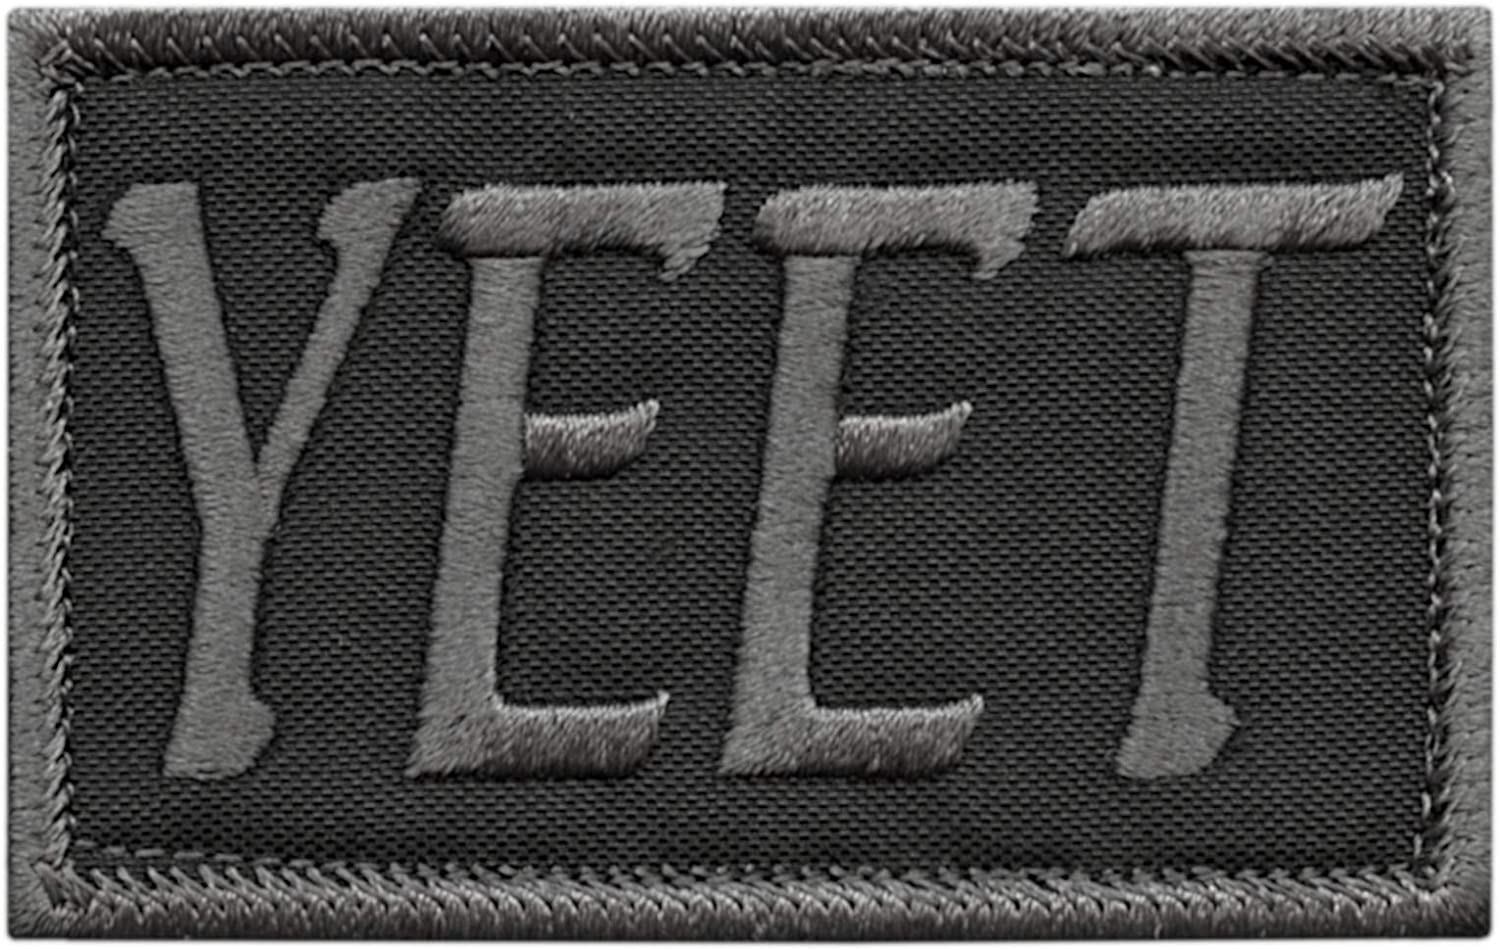 LEGEEON Subdued Yeet 25% OFF Funny 2x3.25 HookLoop Morale Special sale item Tactical Army